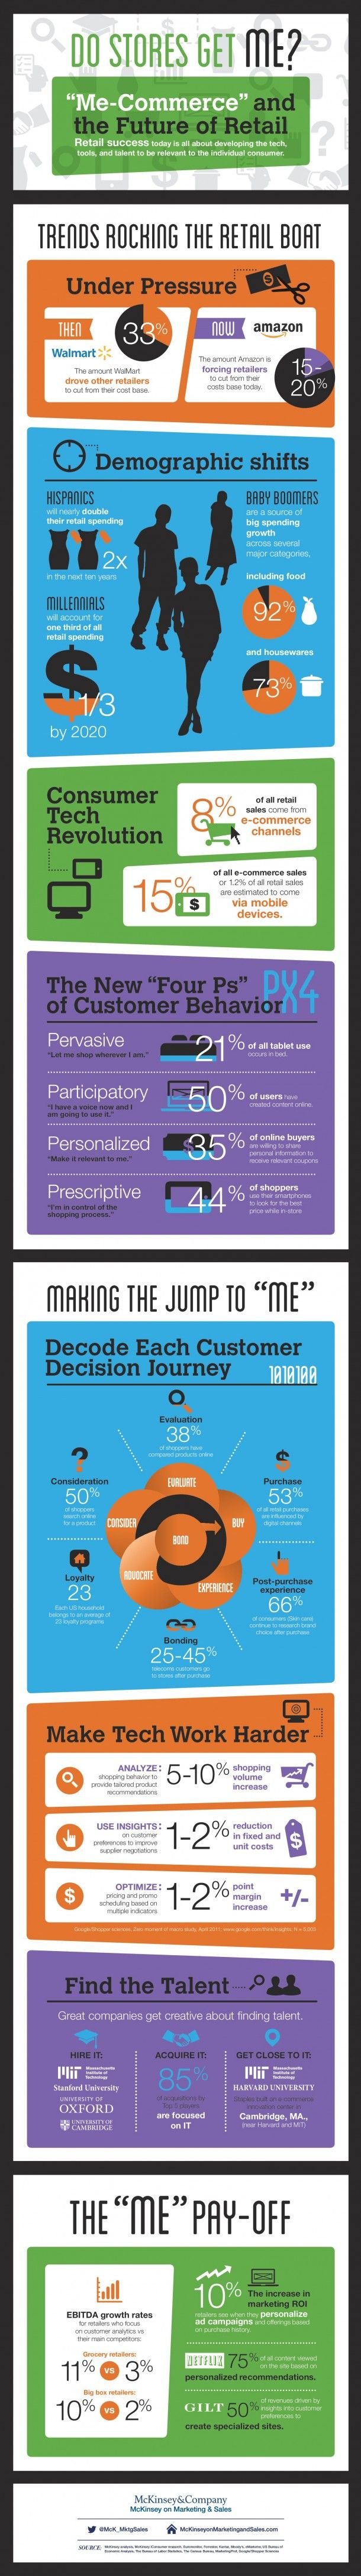 ux / ecomm infographic Me-Commerce and the Future of Retail